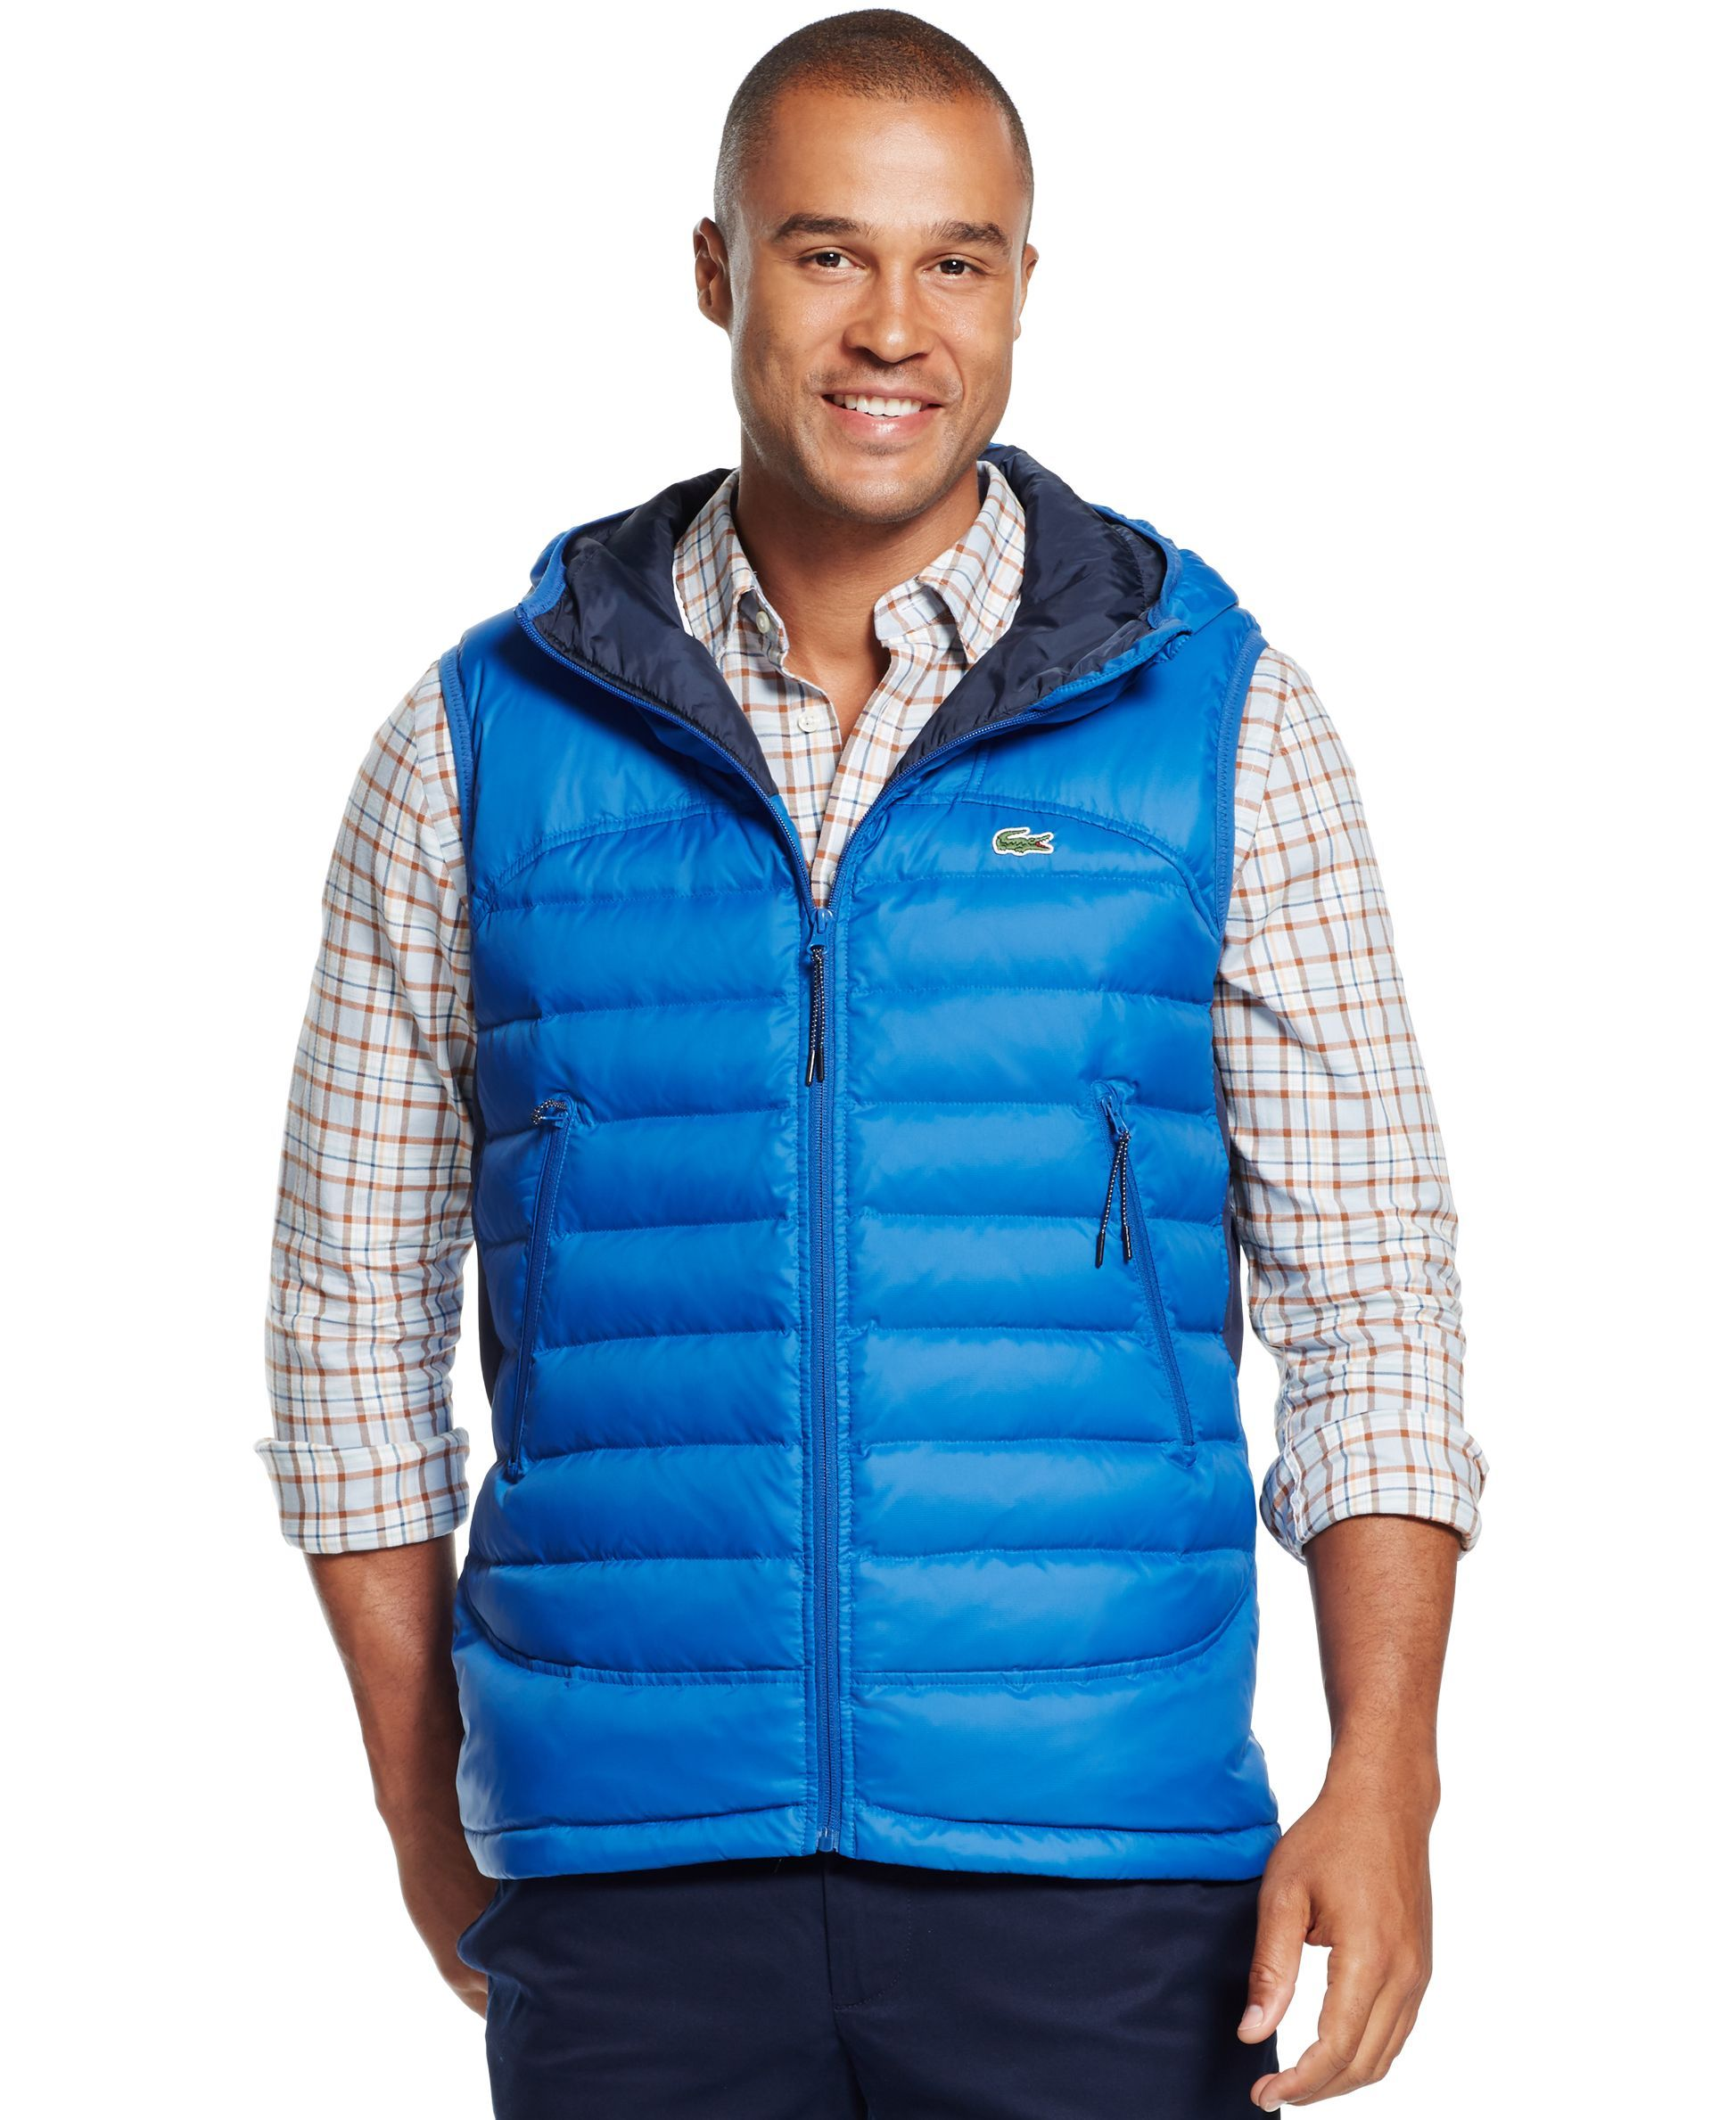 d05cbf2dabfb Lacoste Lightweight Quilted Down Vest